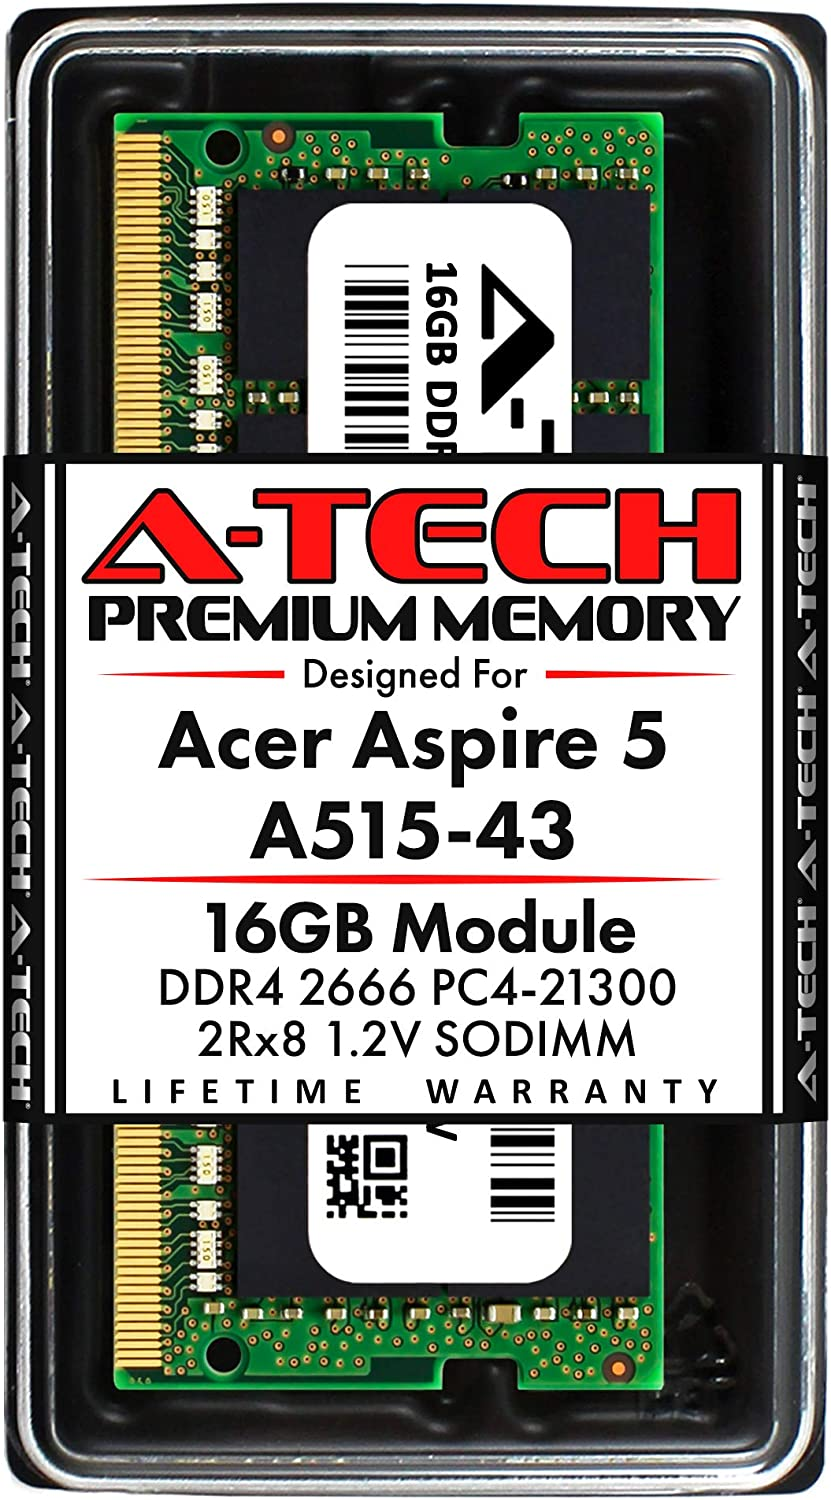 A-Tech 16GB RAM for Acer Aspire 5 Slim Laptop A515-43 | DDR4 2666MHz SODIMM PC4-21300 260-Pin CL19 1.2V Non-ECC Unbuffered Memory Upgrade Module